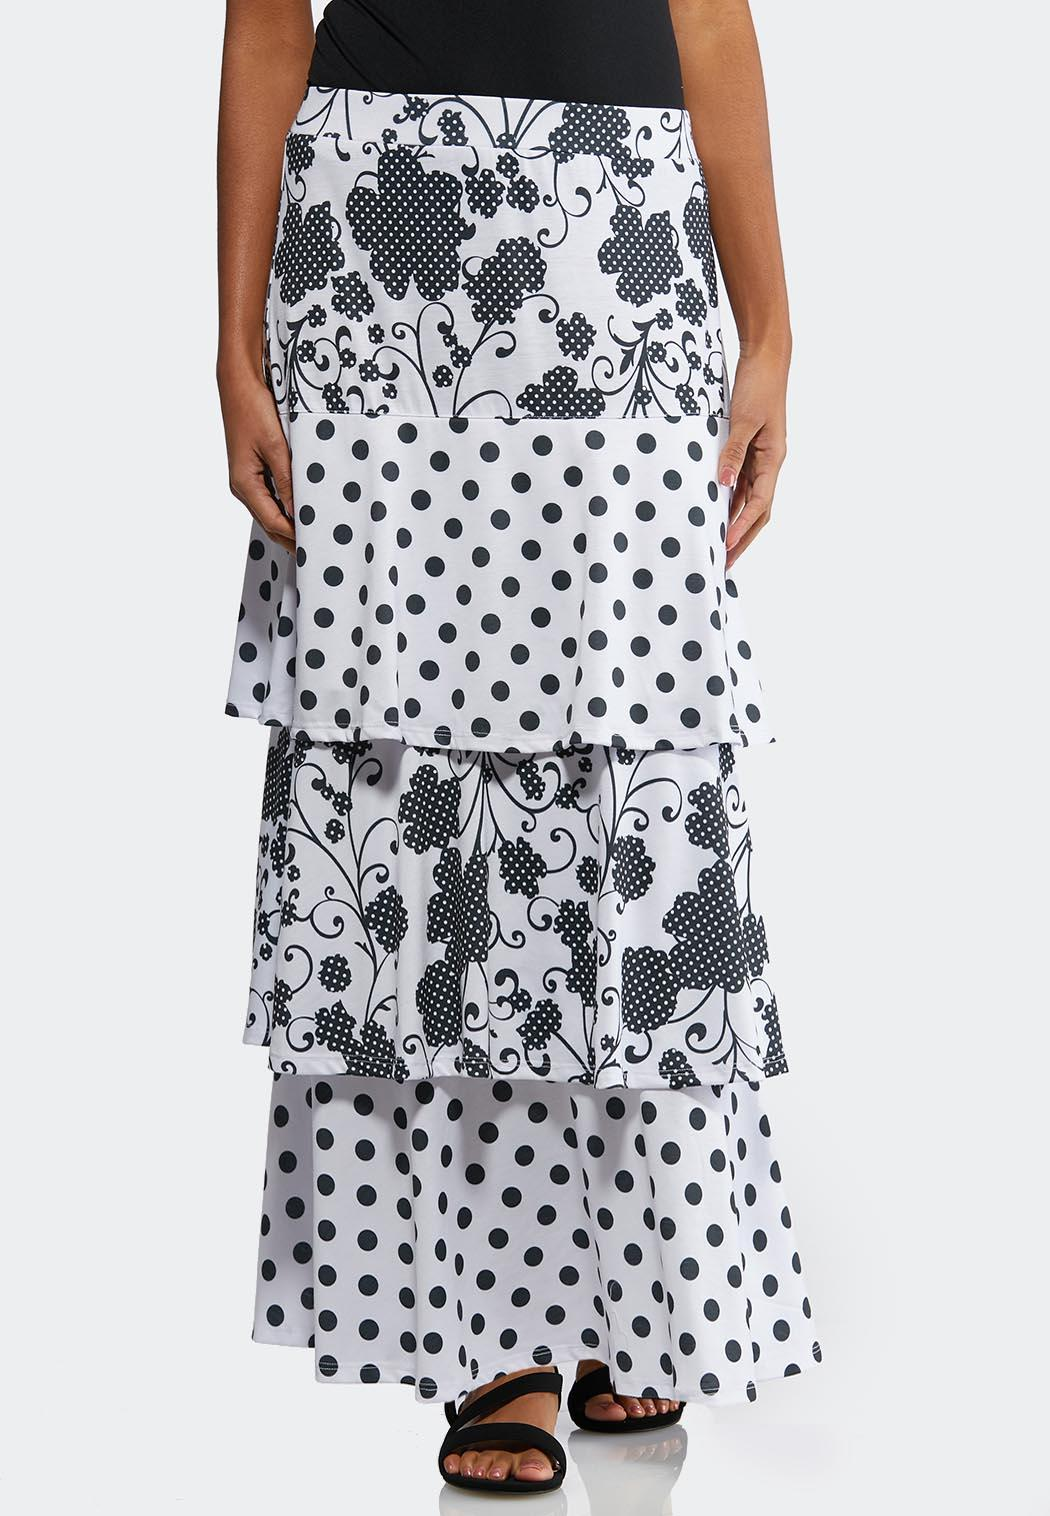 cbf339b6a6 Plus Tiered Floral Dot Skirt Maxi Cato Fashions